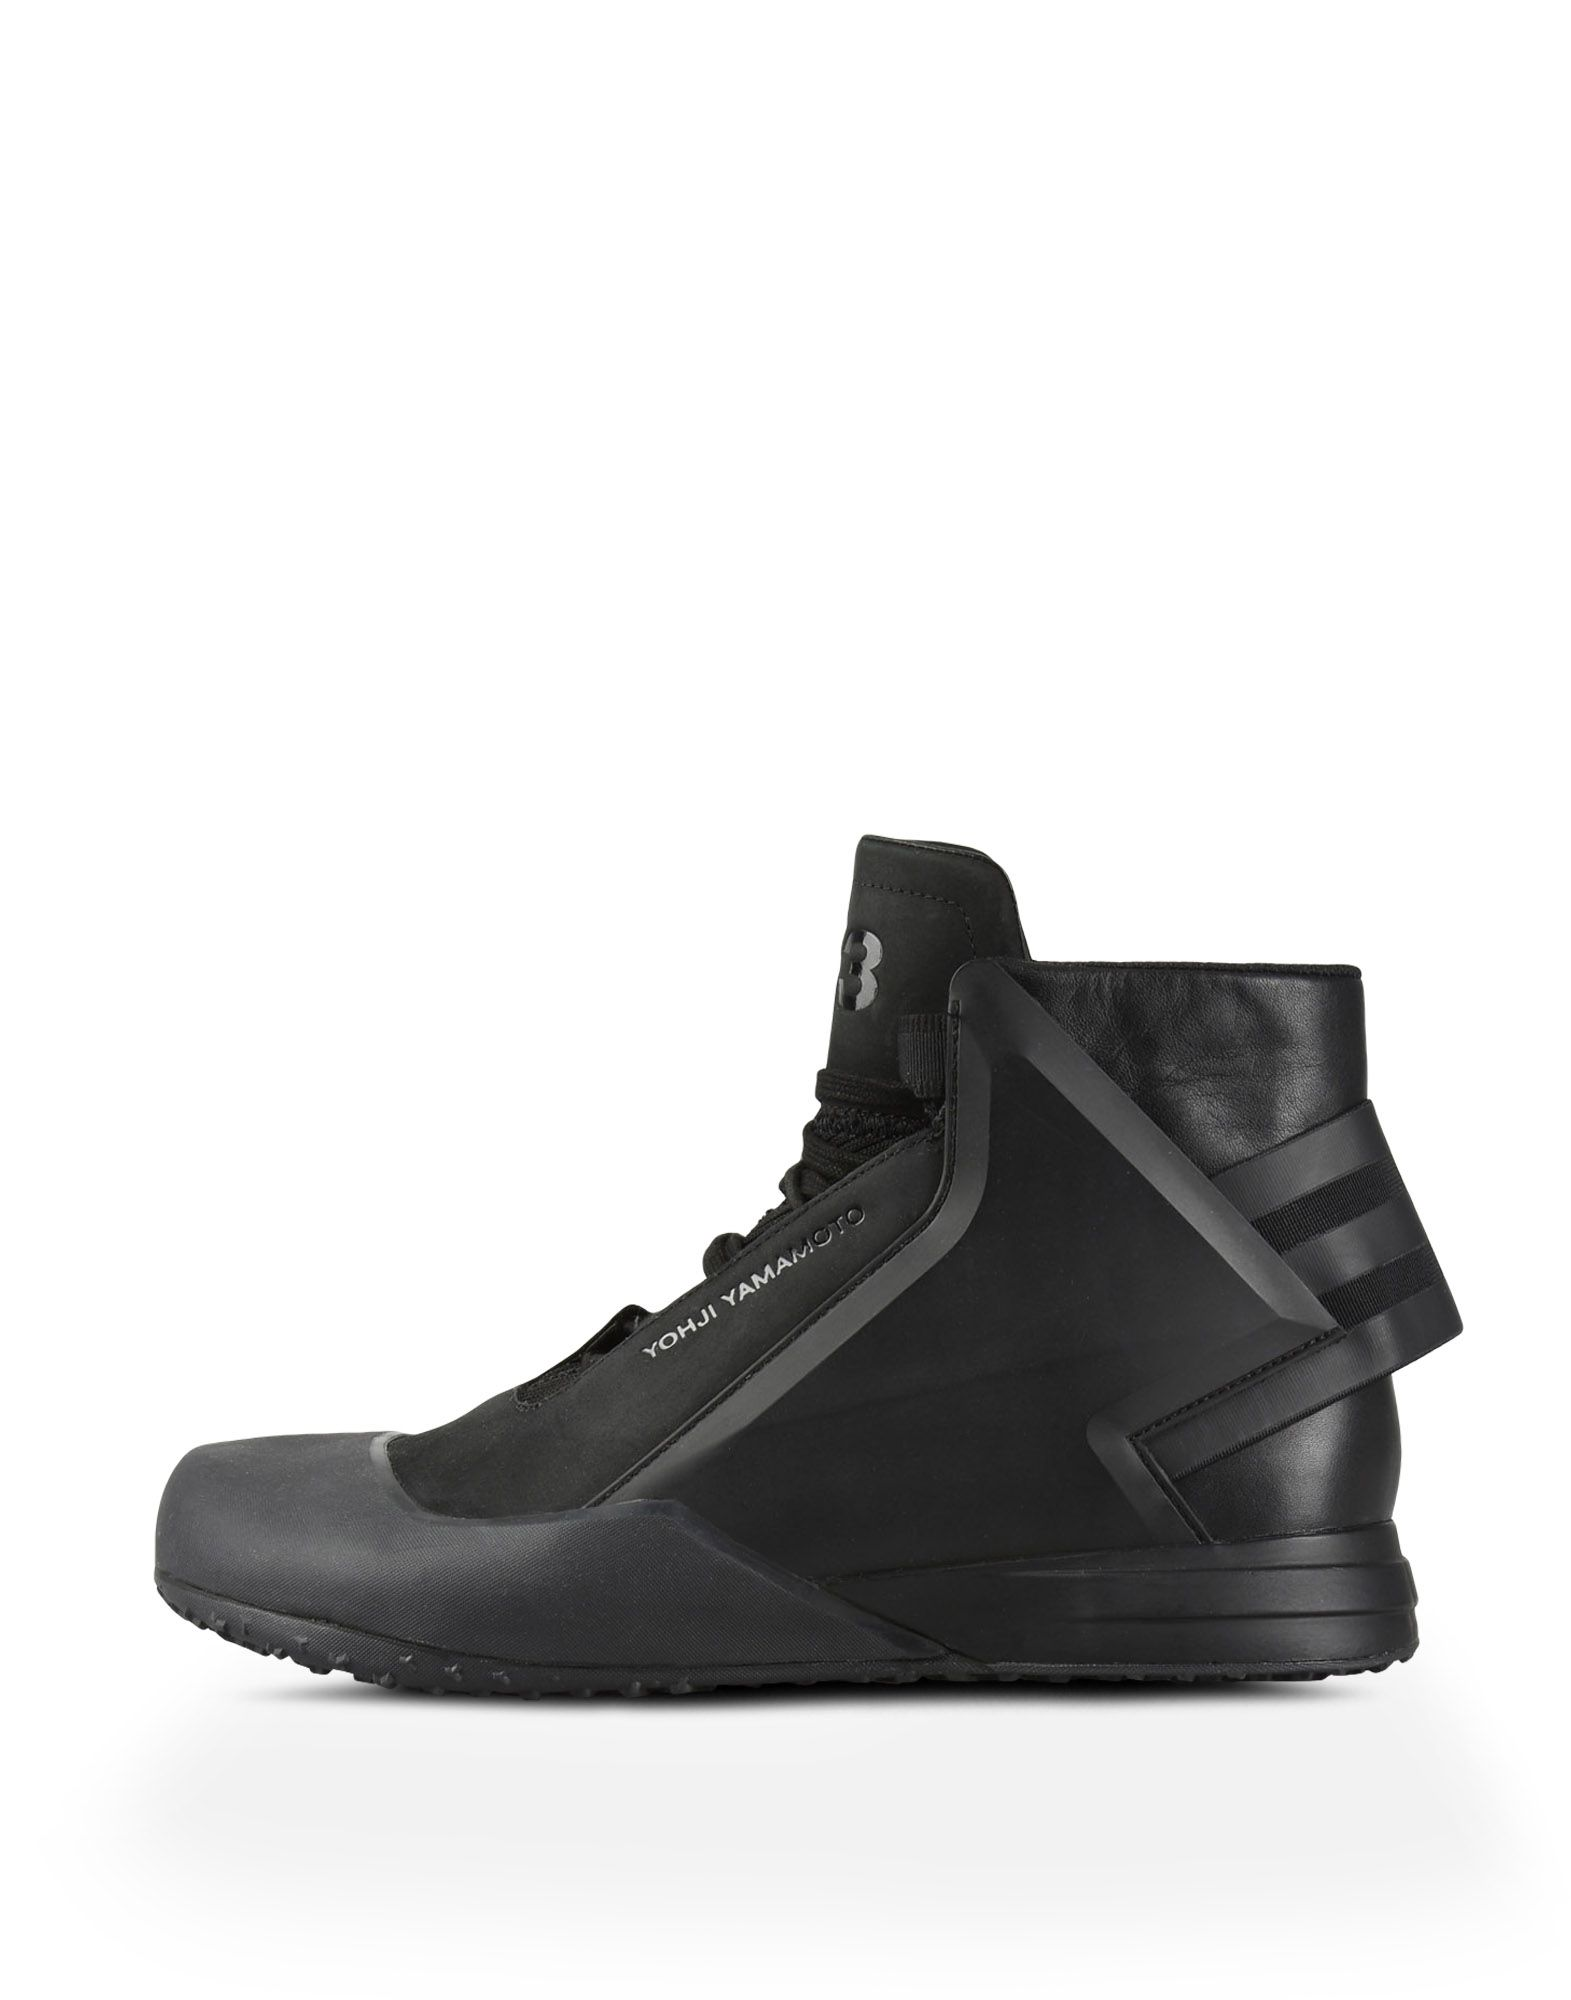 3c9f1307afbff ... Y-3 Y-3 BBALL TECH High-top sneakers Man f ...